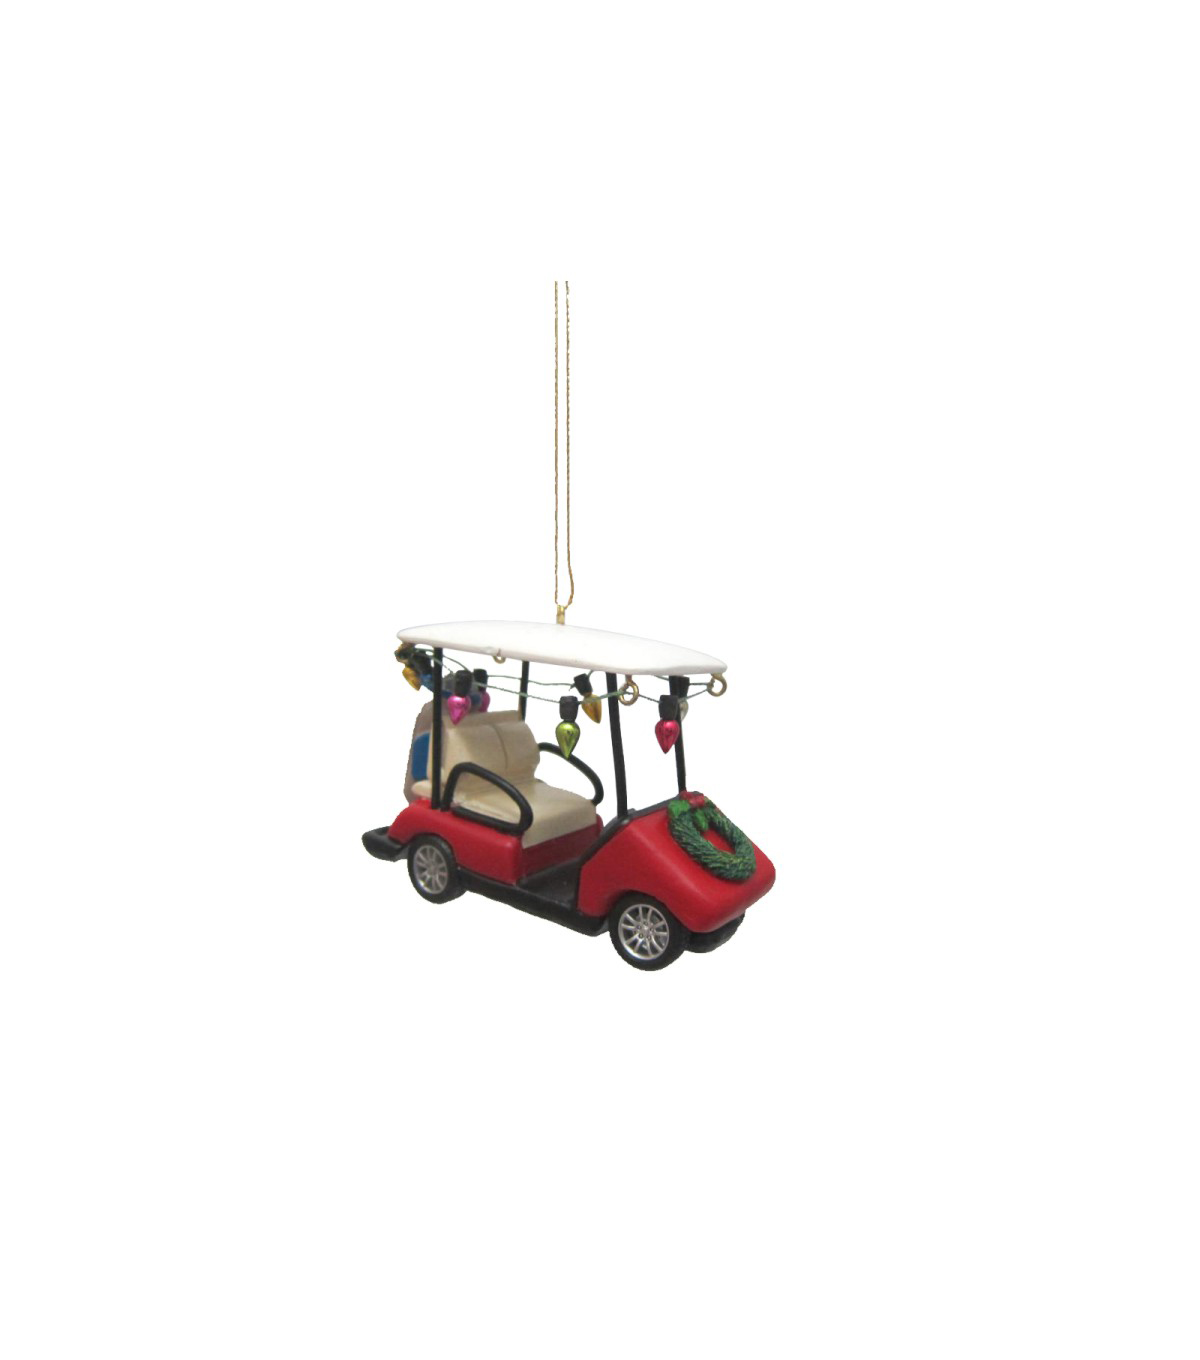 Maker\u0027s Holiday Christmas Golf Cart with Lights Ornament